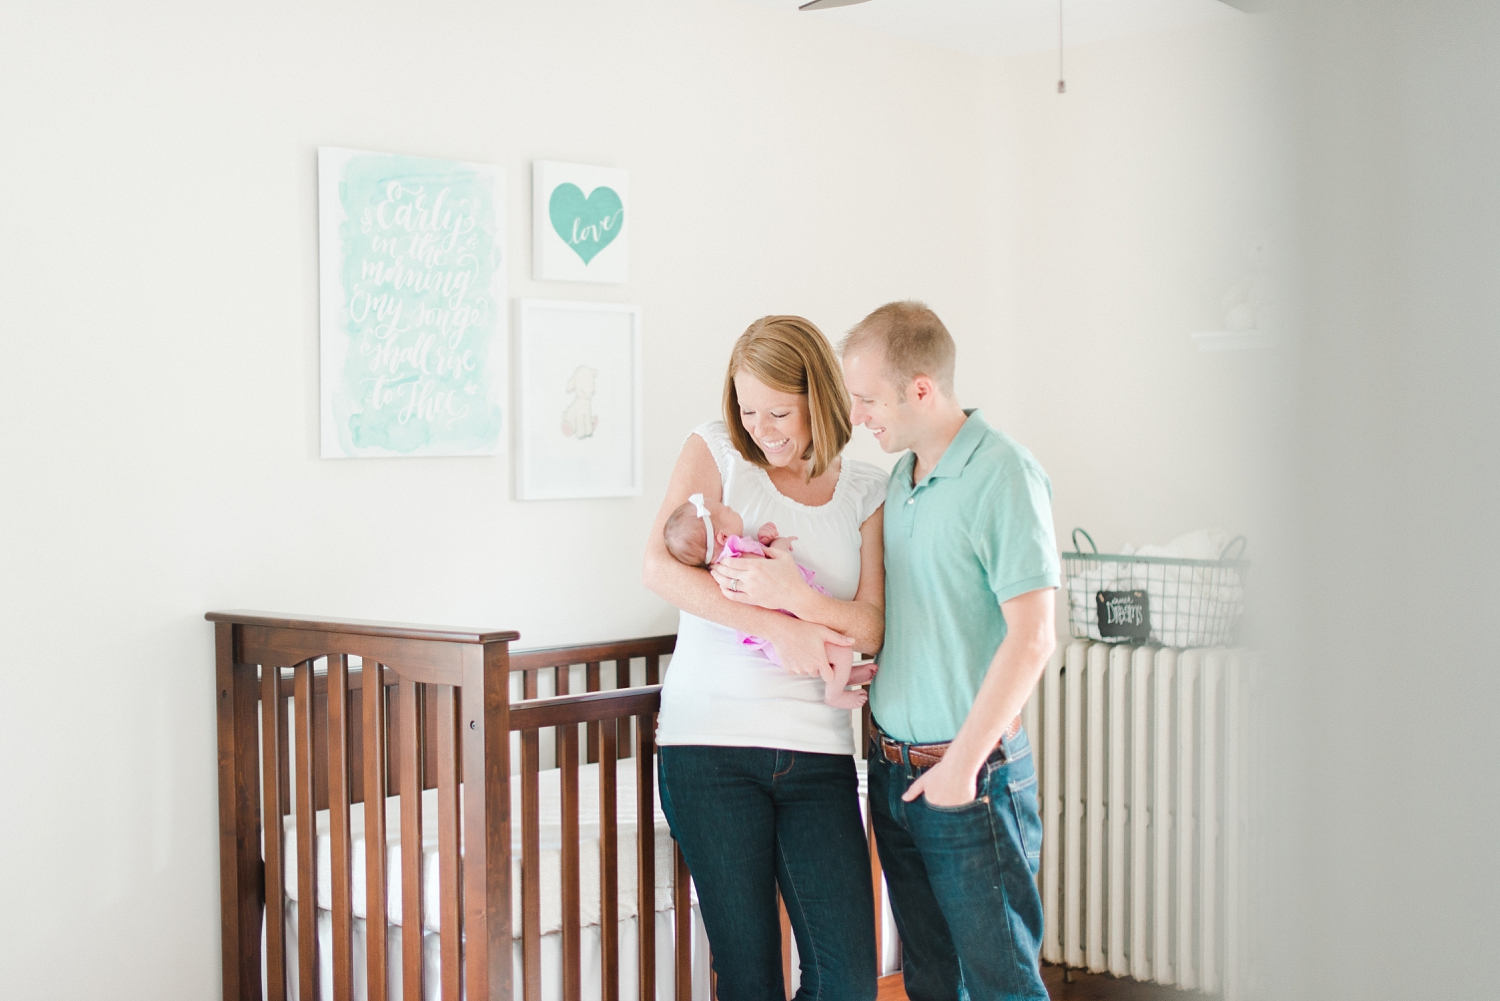 richmond_family_newborn photographer_0011.jpg